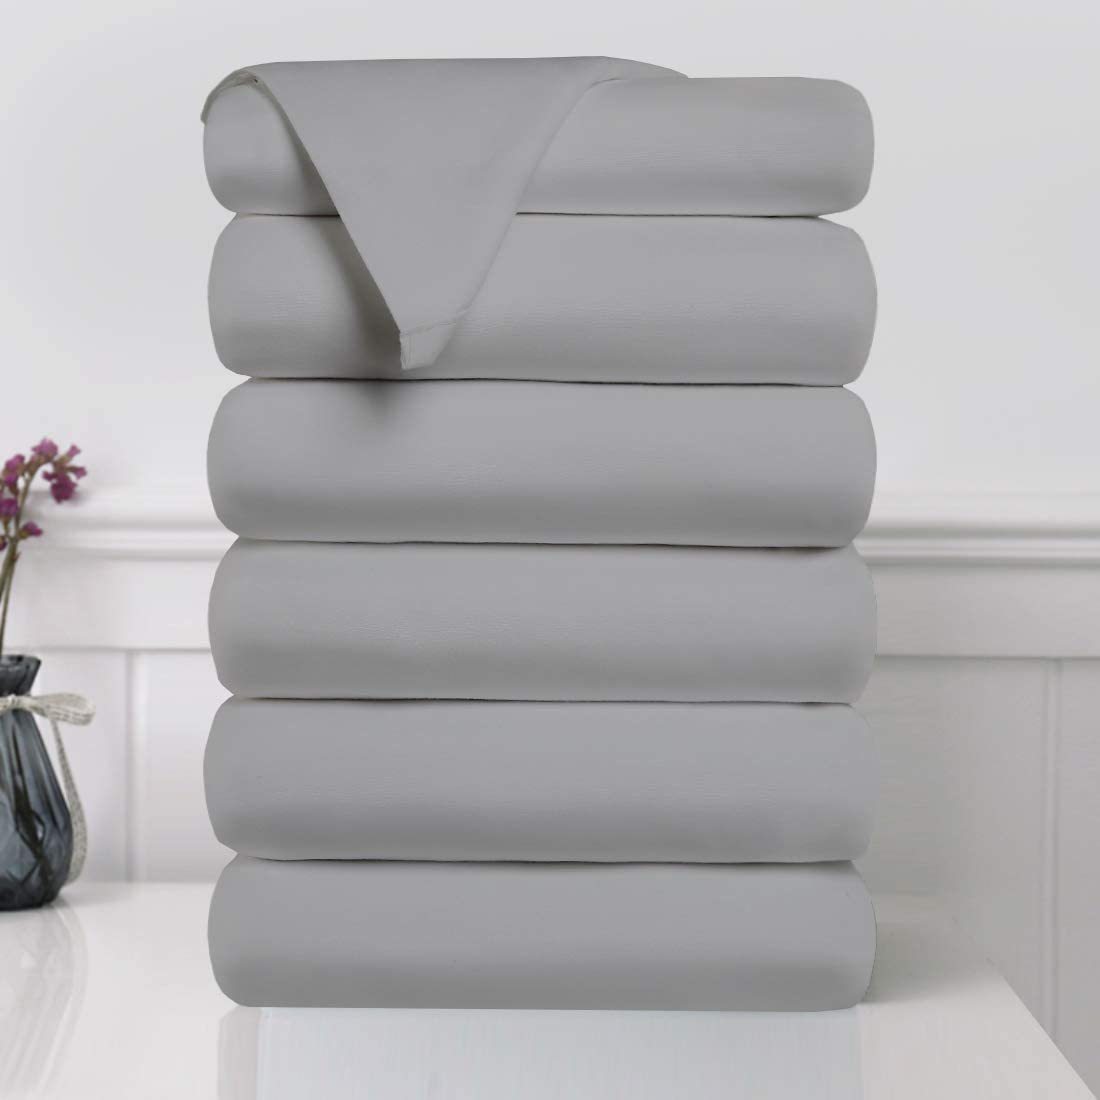 EDILLY Bed Flat Sheets 6 Pack Brushed Size Super Soft 売買 新作 人気 Queen Mi